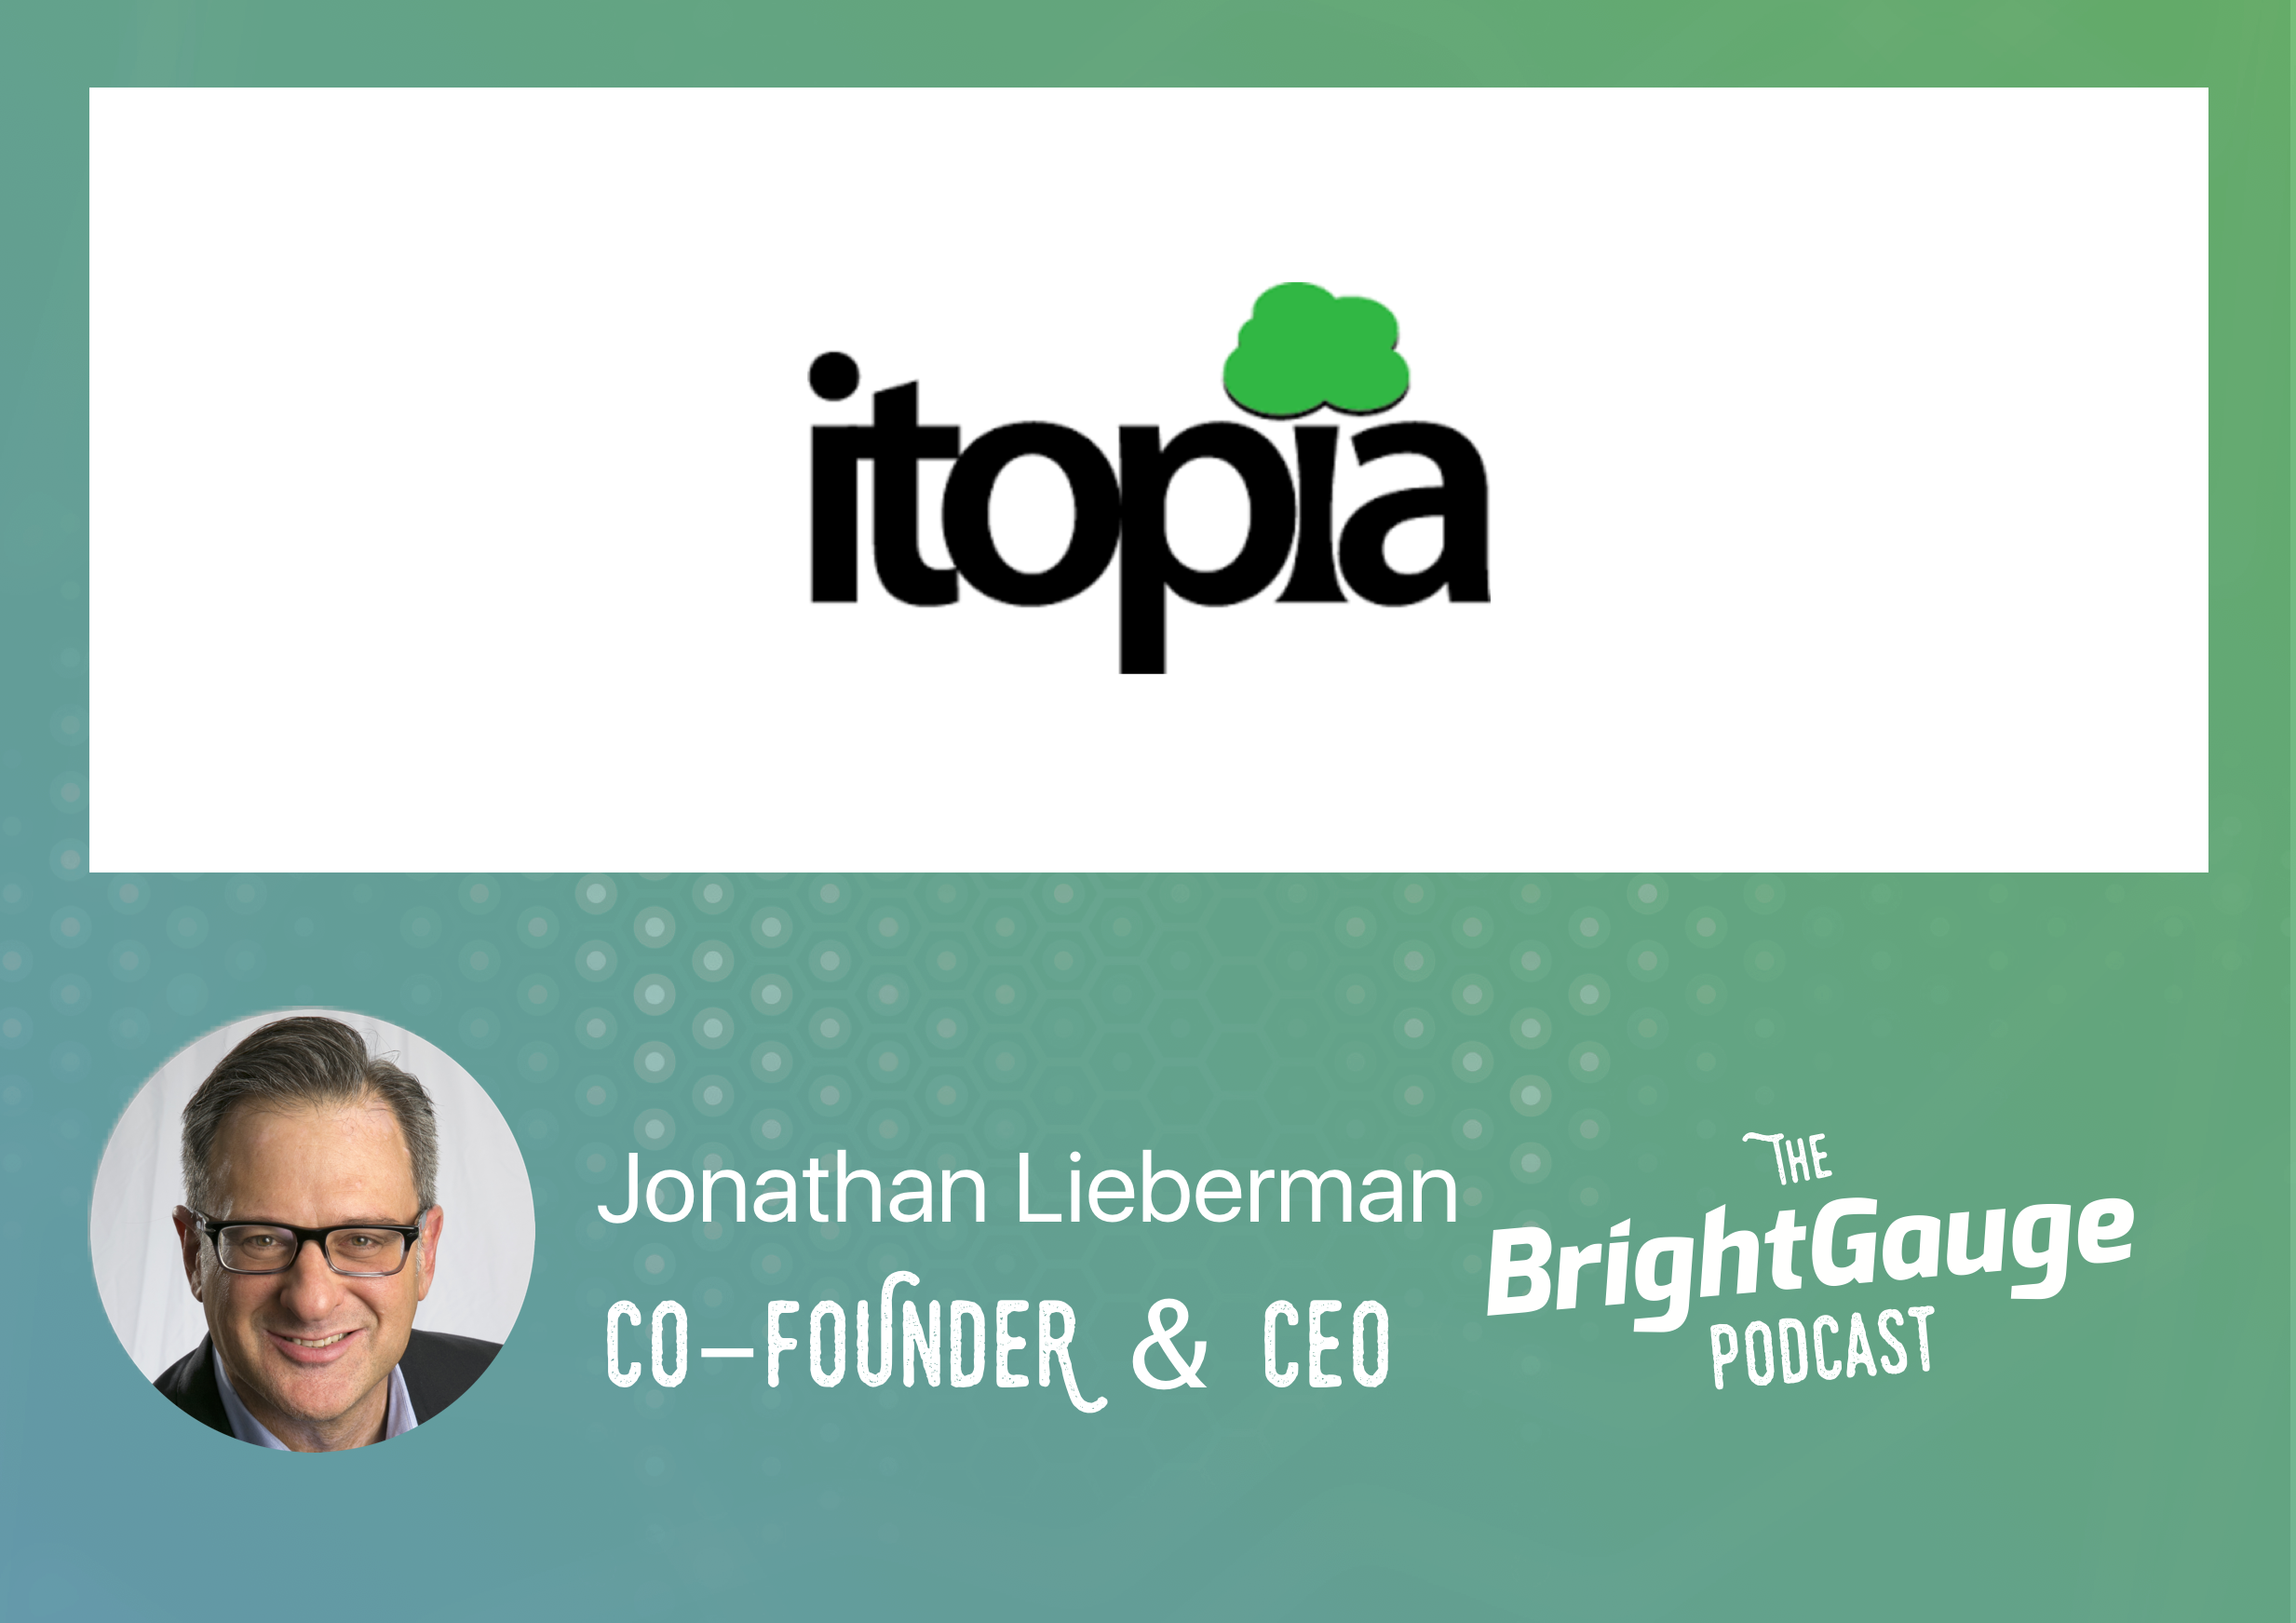 [Podcast] Episode 29 with Jonathan Lieberman of Itopia